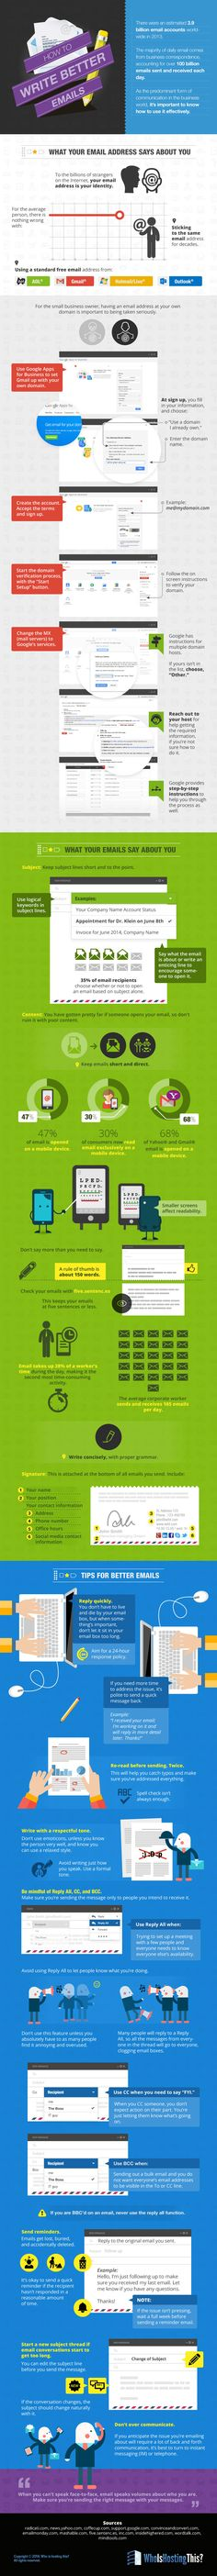 How to Write Better Emails #infographic #Emails #Marketing #HowTo